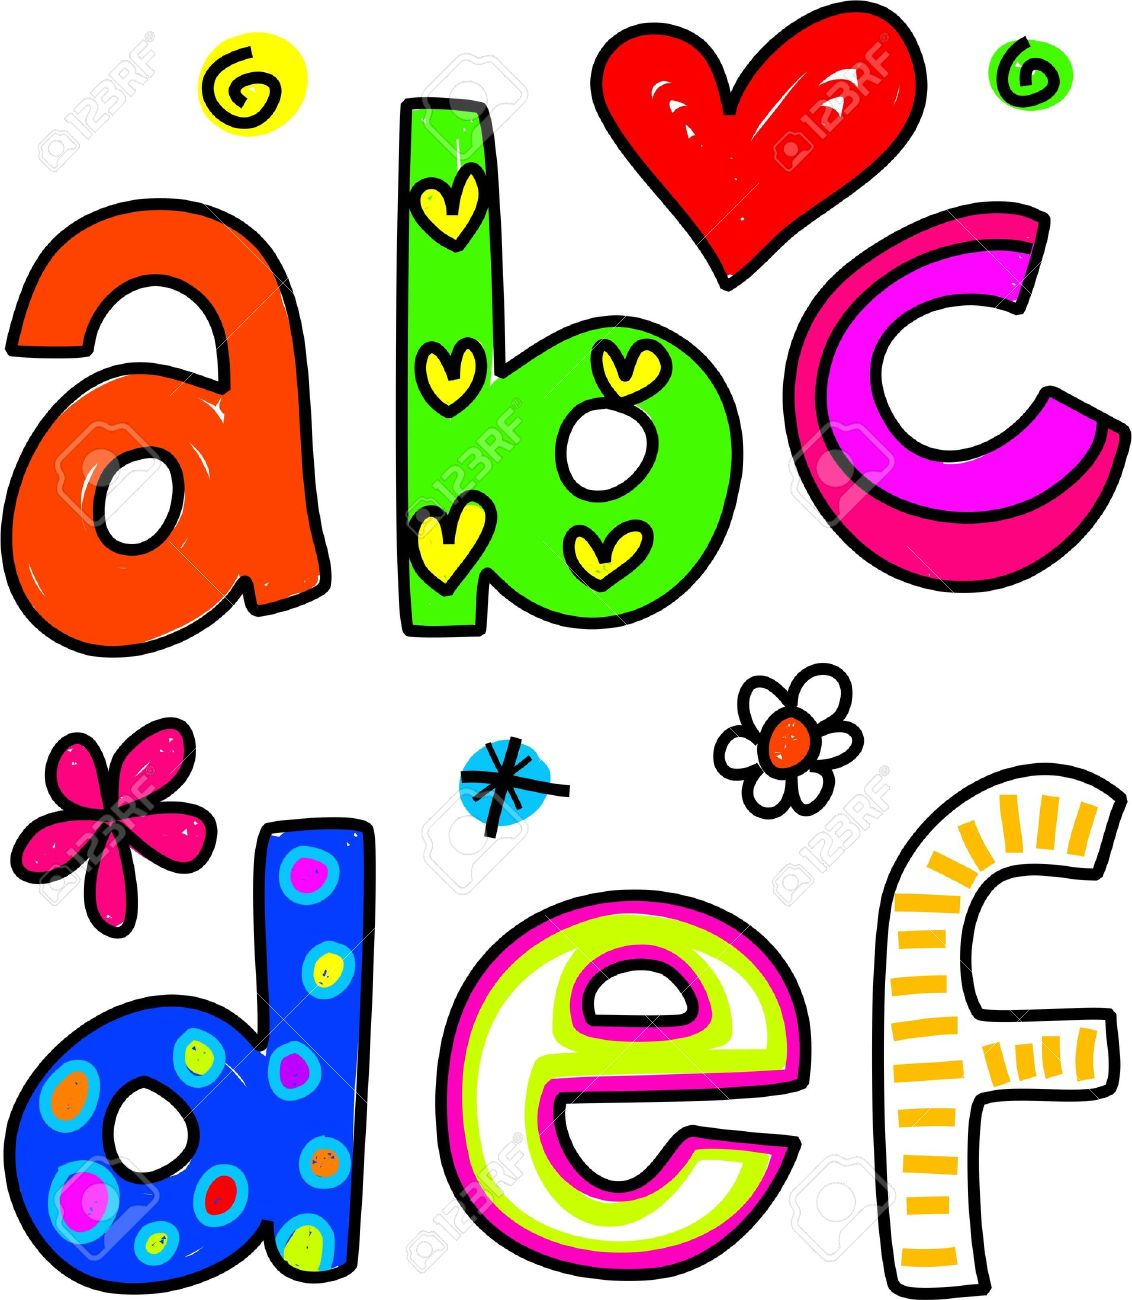 Abc clipart line drawing.  collection of lowercase